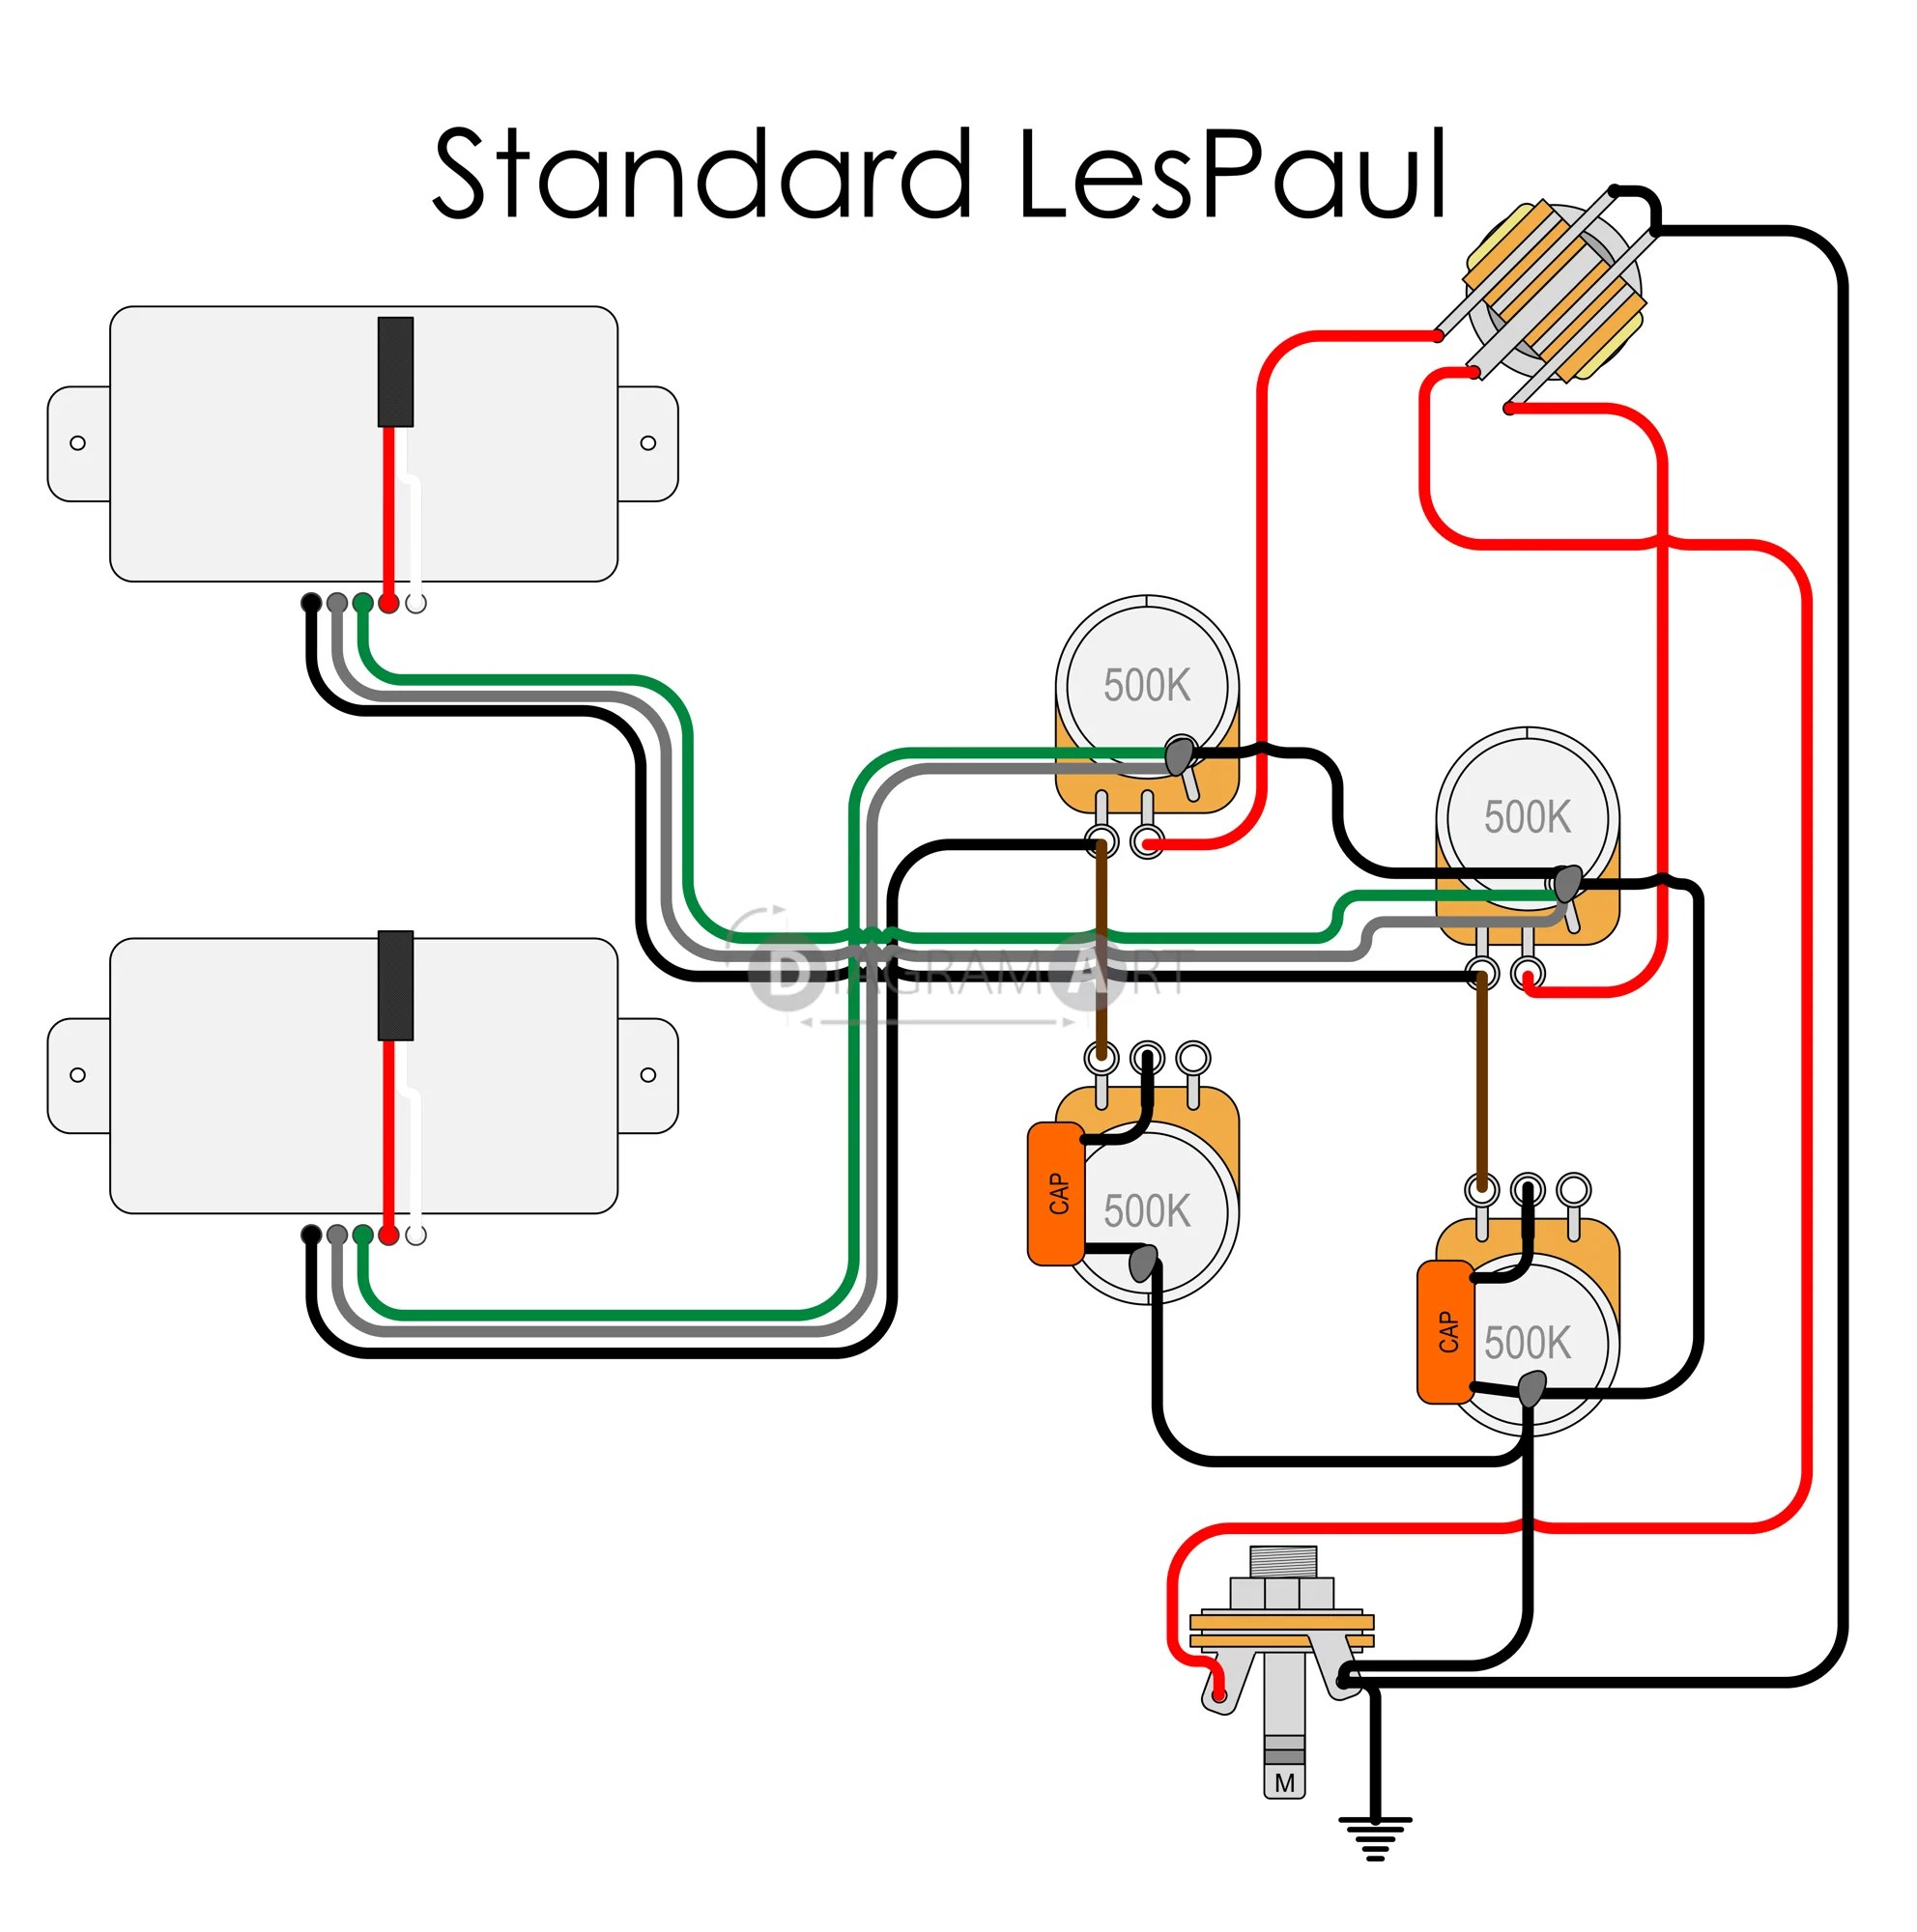 small resolution of standard les paul wiring diagram wiring diagram expert les paul wiring diagram les paul pro wiring diagram